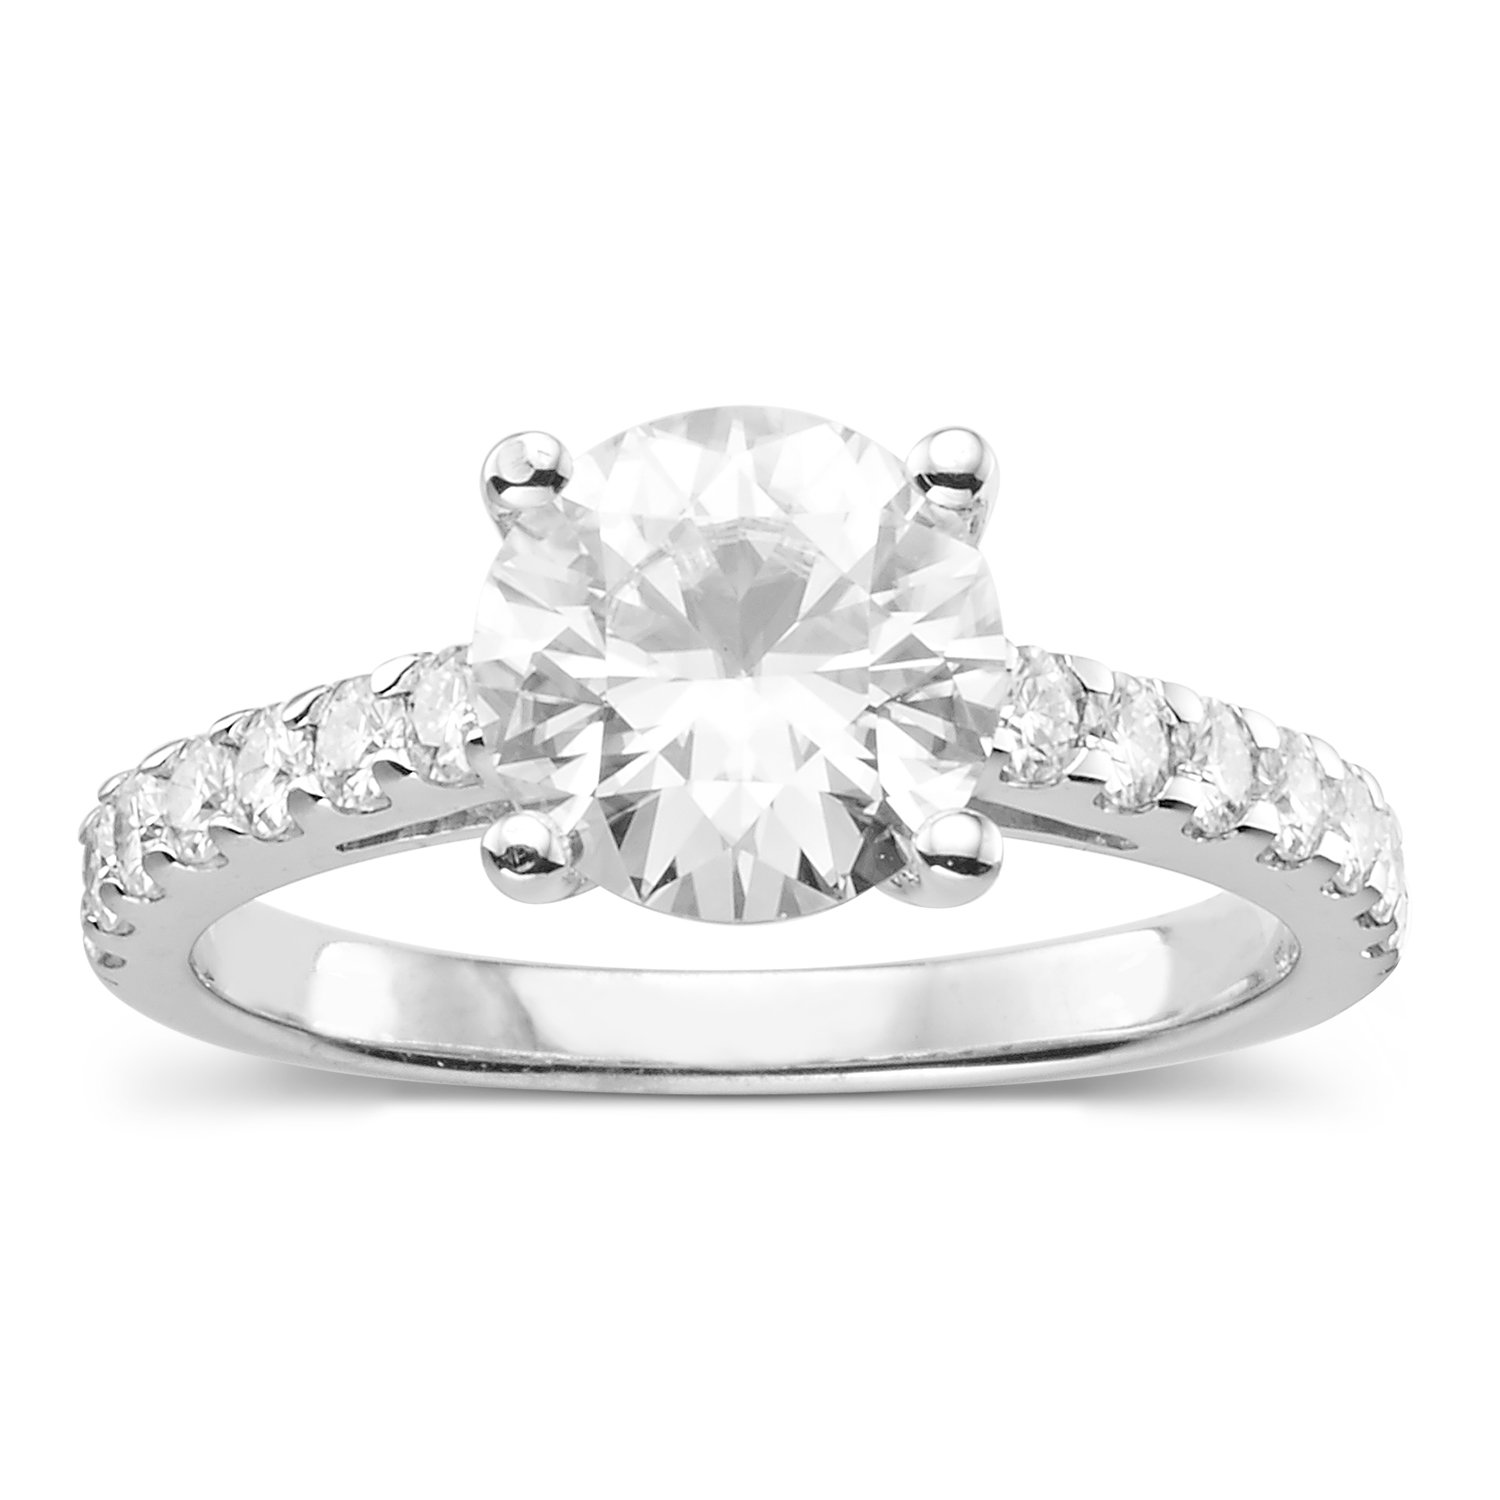 Forever Classic Round 8.0mm Moissanite Engagement Ring-size 7, 2.32cttw DEW By Charles & Colvard by Charles & Colvard